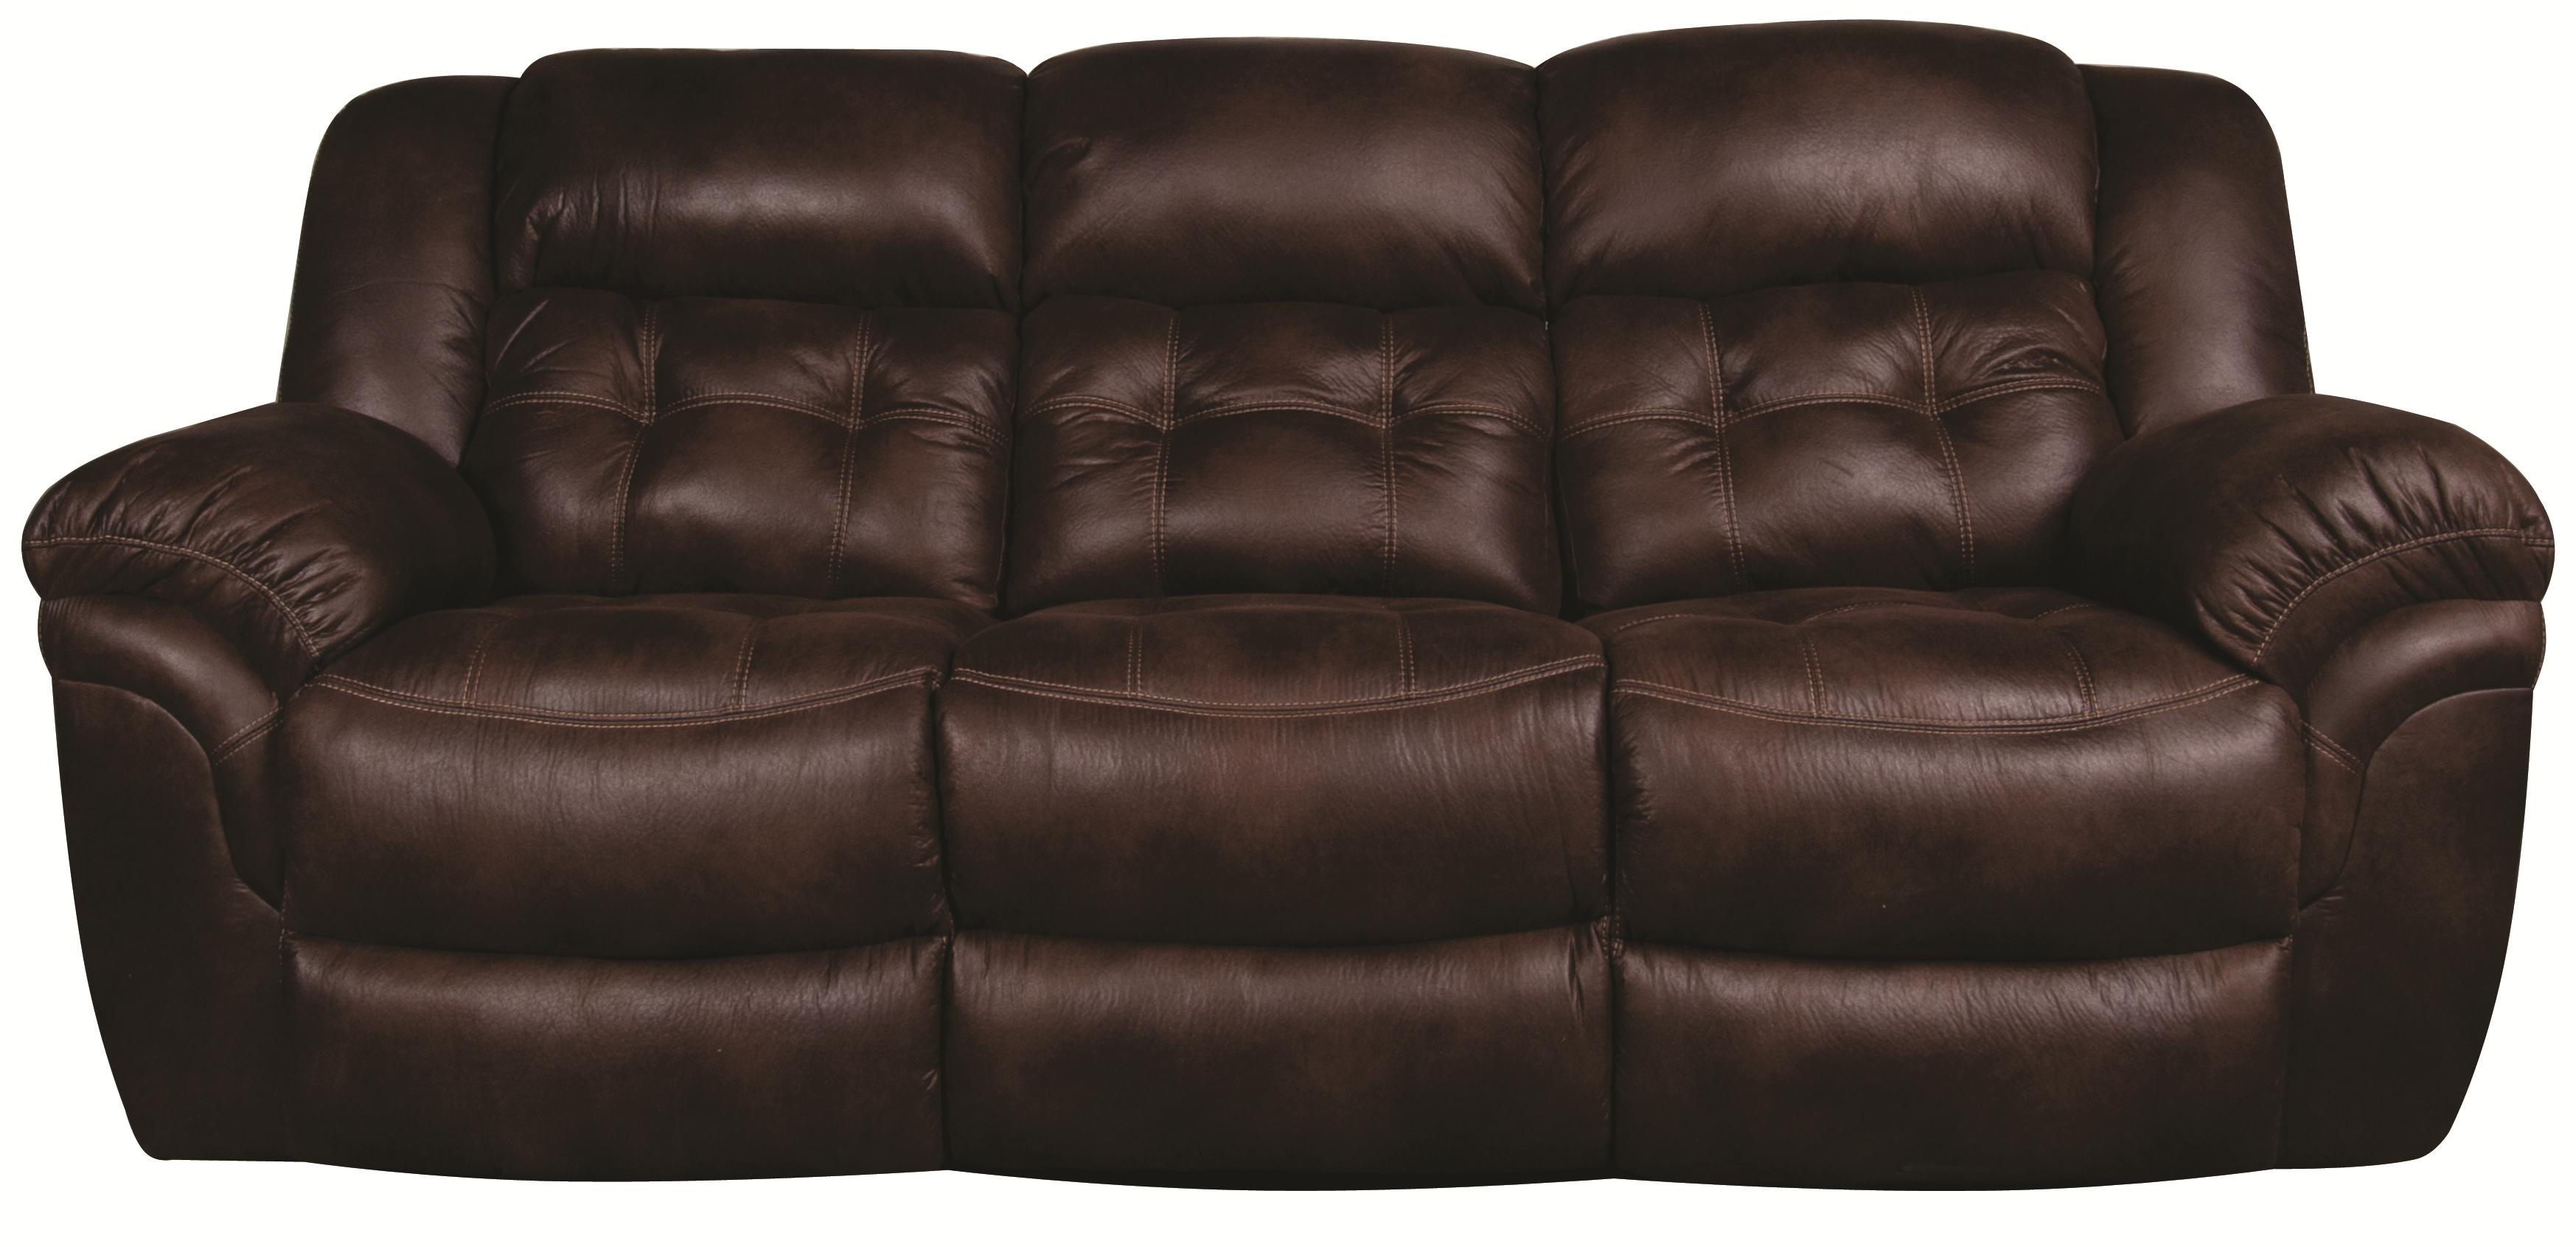 Morris Home Furnishings Elijah Elijah Reclining Sofa   Item Number:  102855054